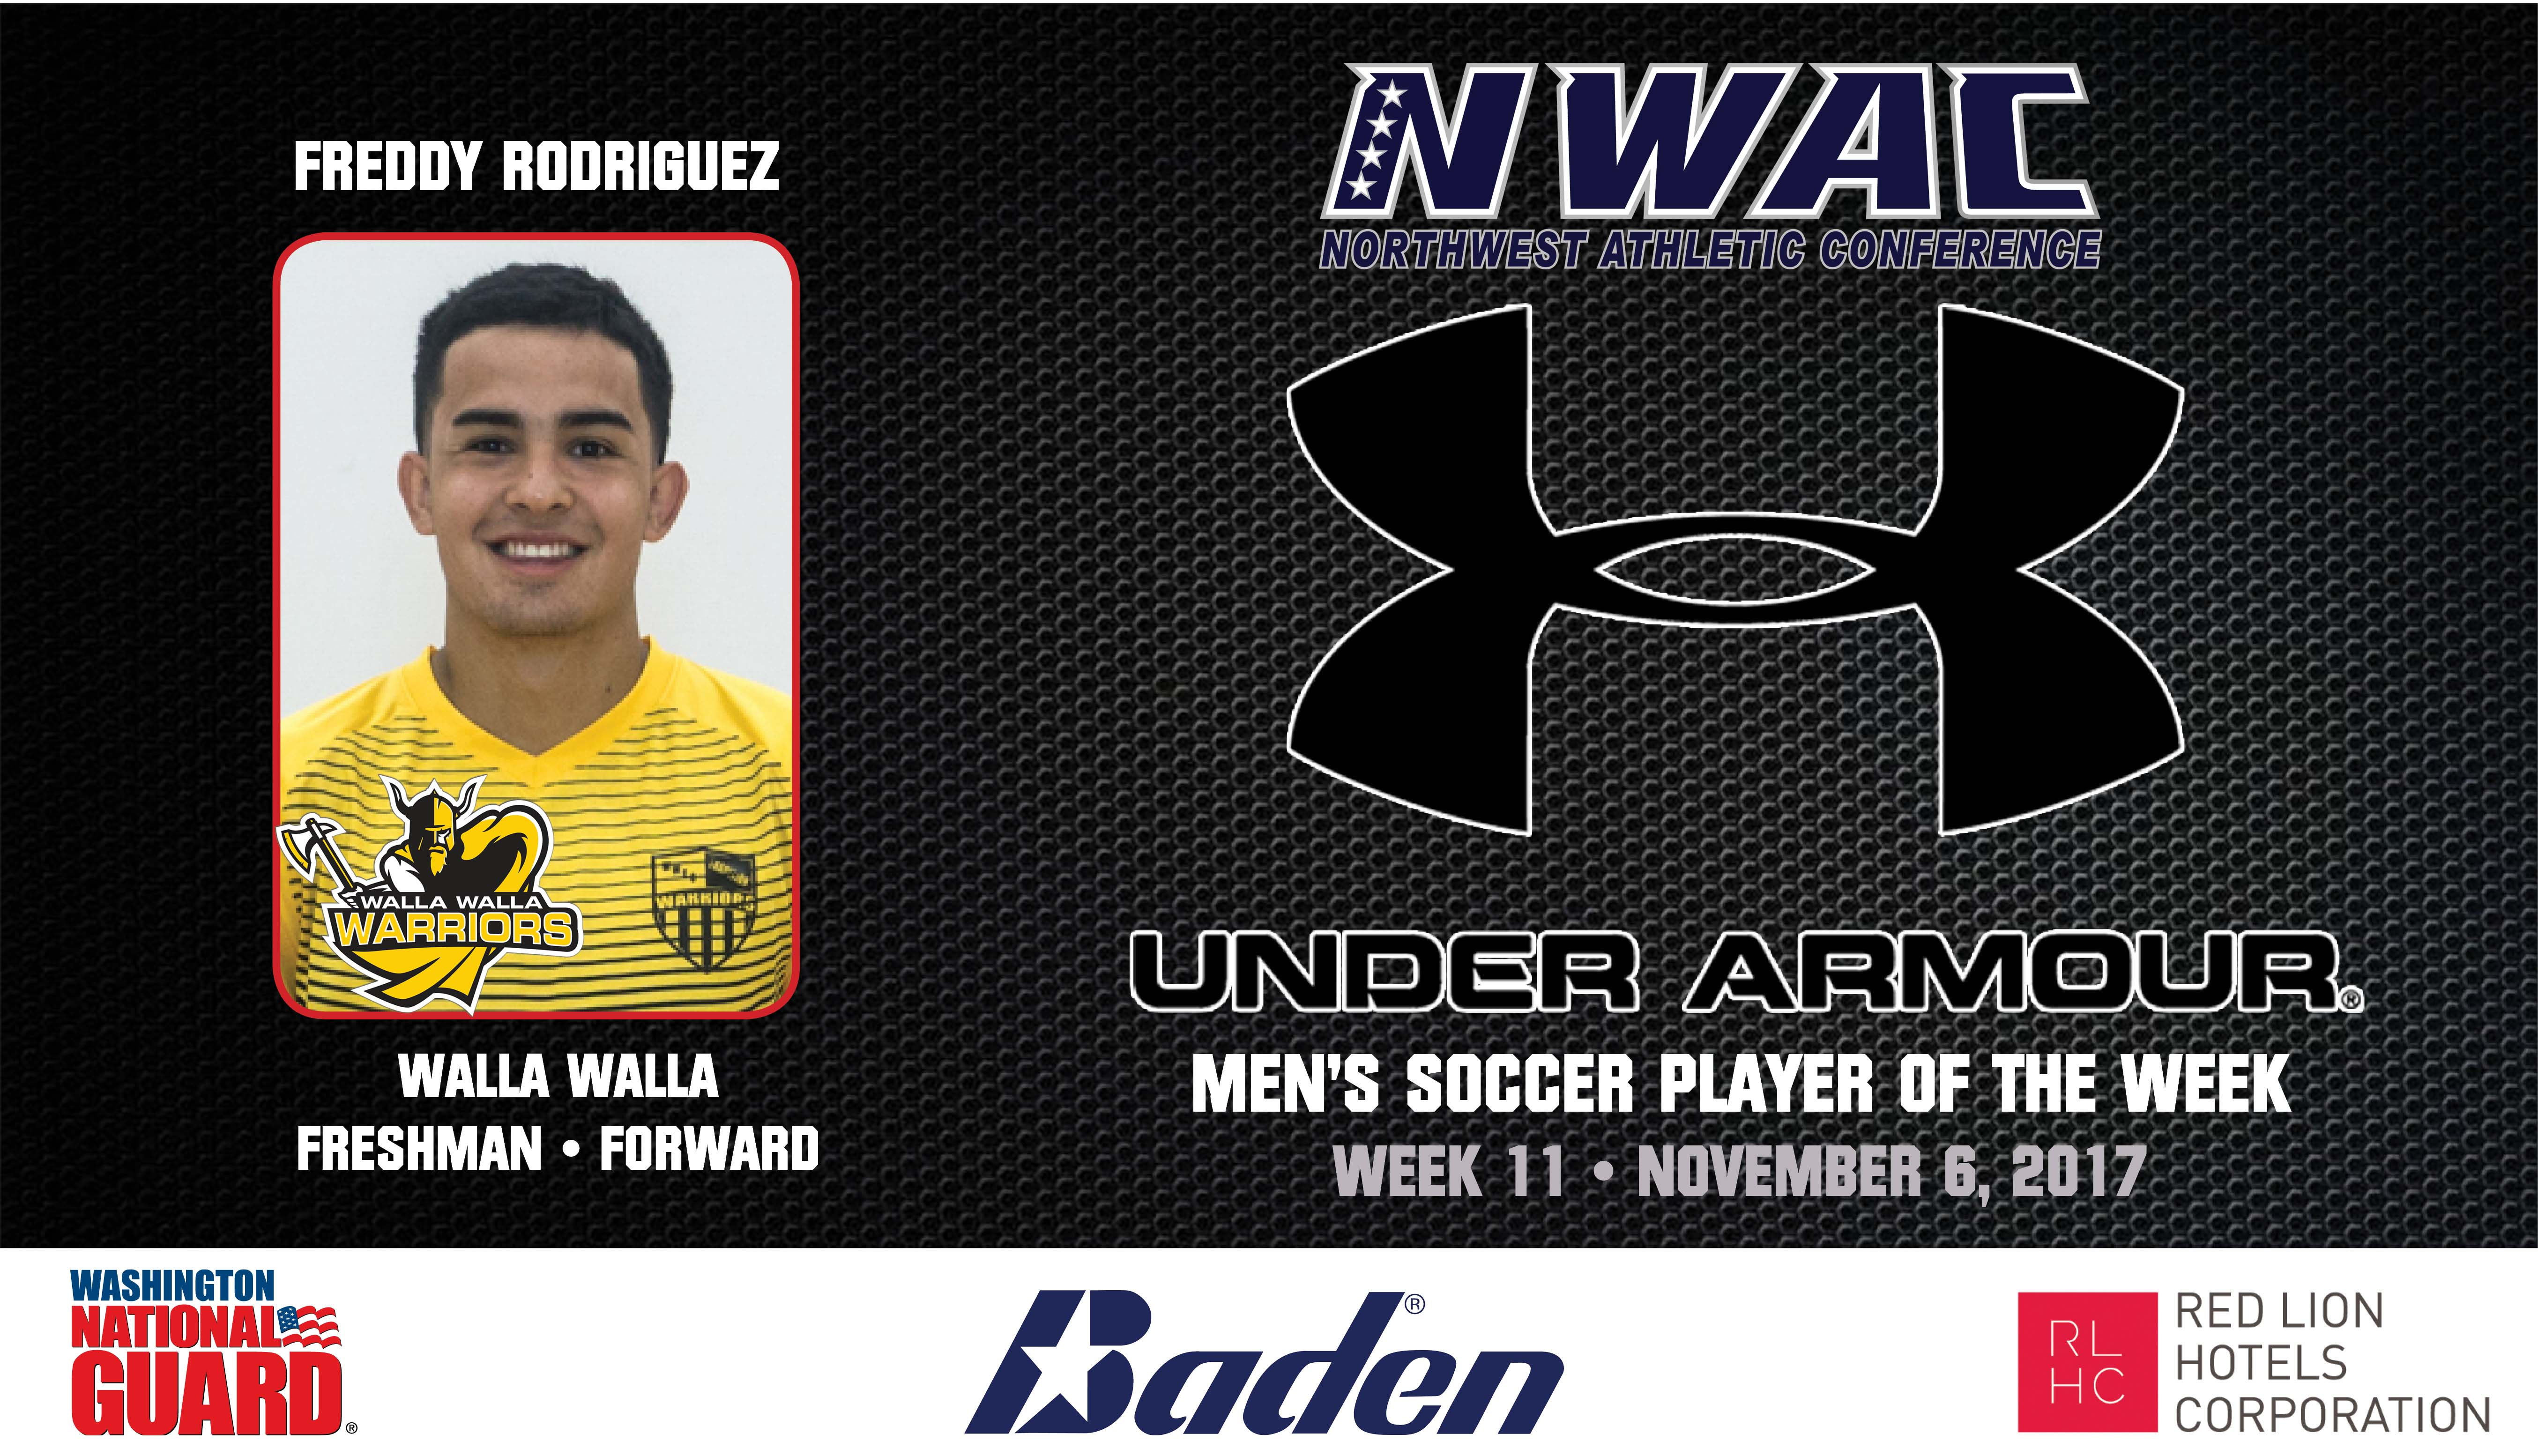 Freddy Rodriguez Armour Player of the Week graphic